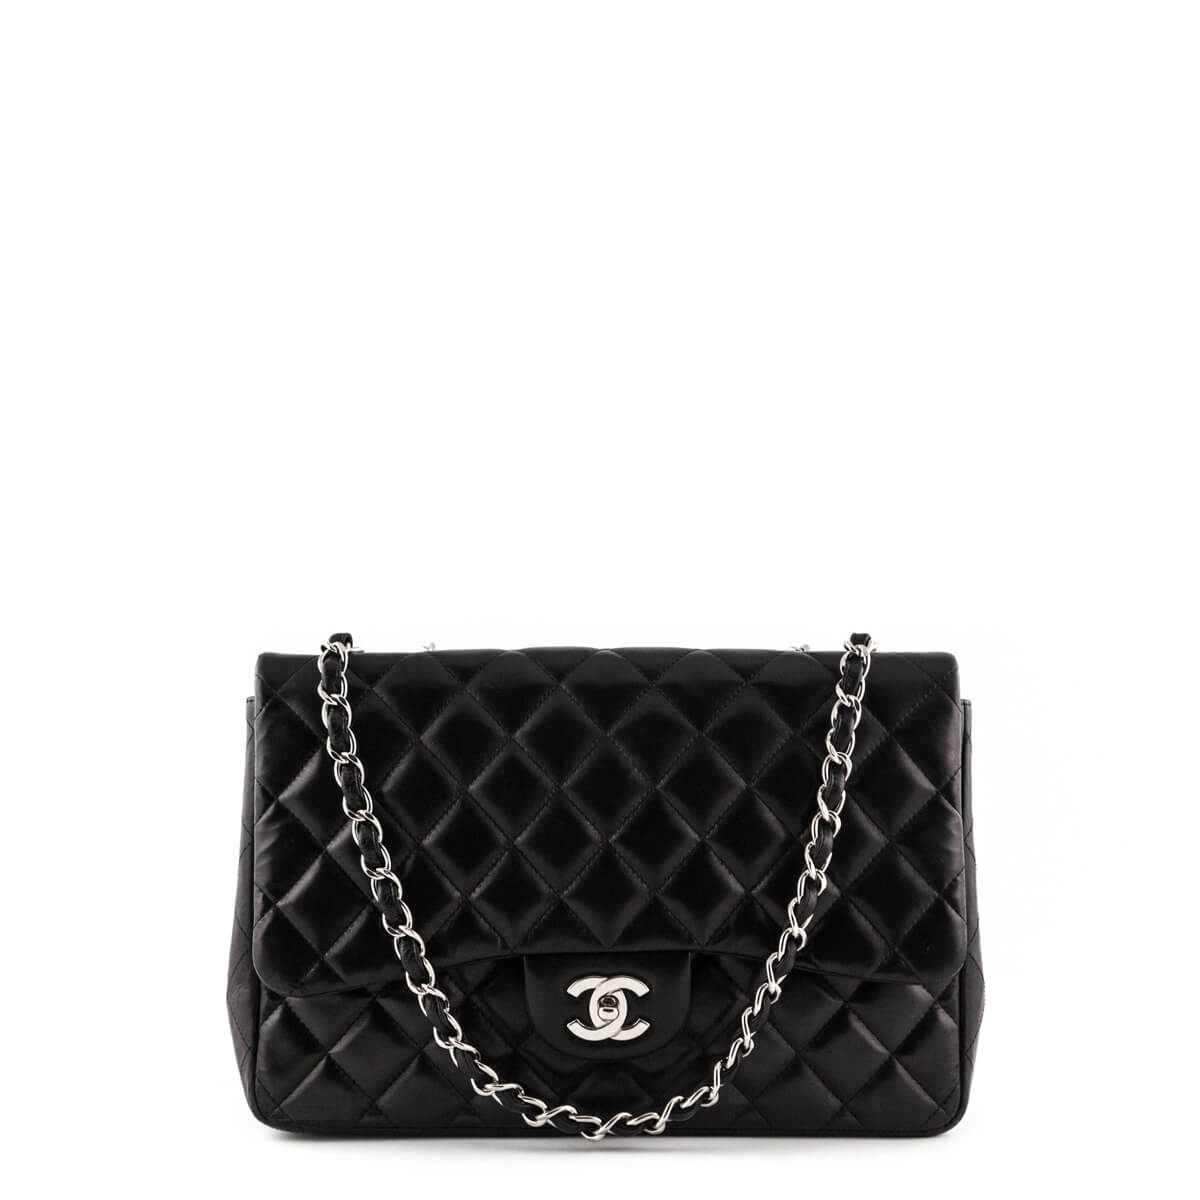 c26fbac66ffde9 Chanel Black Lambskin Jumbo Single Flap Bag SHW - LOVE that BAG - Preowned  Authentic Designer ...